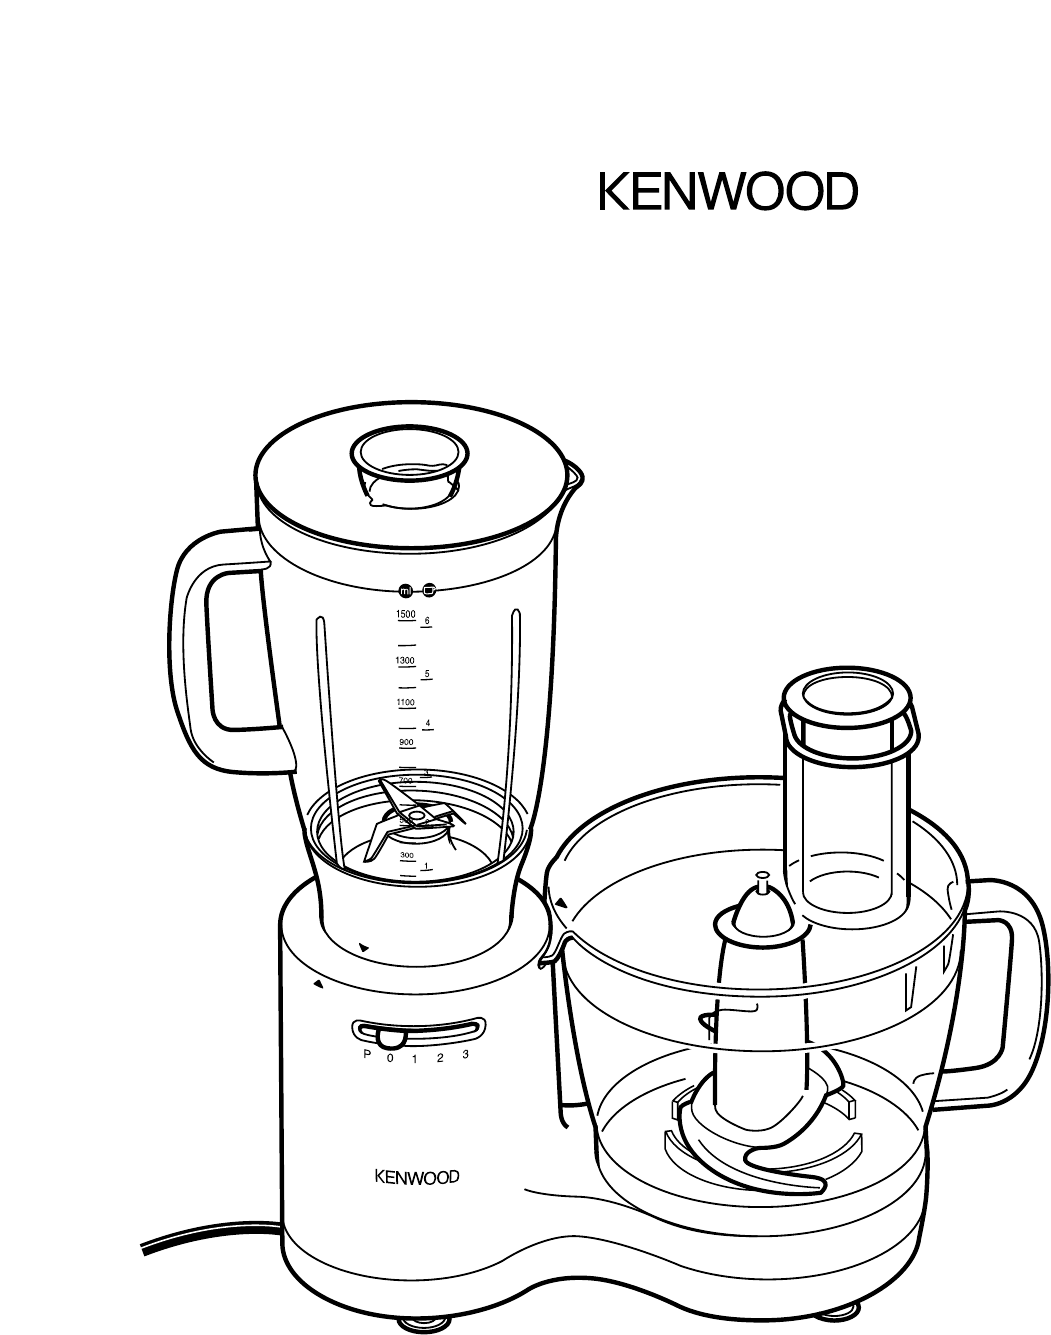 kenwood mixer manual